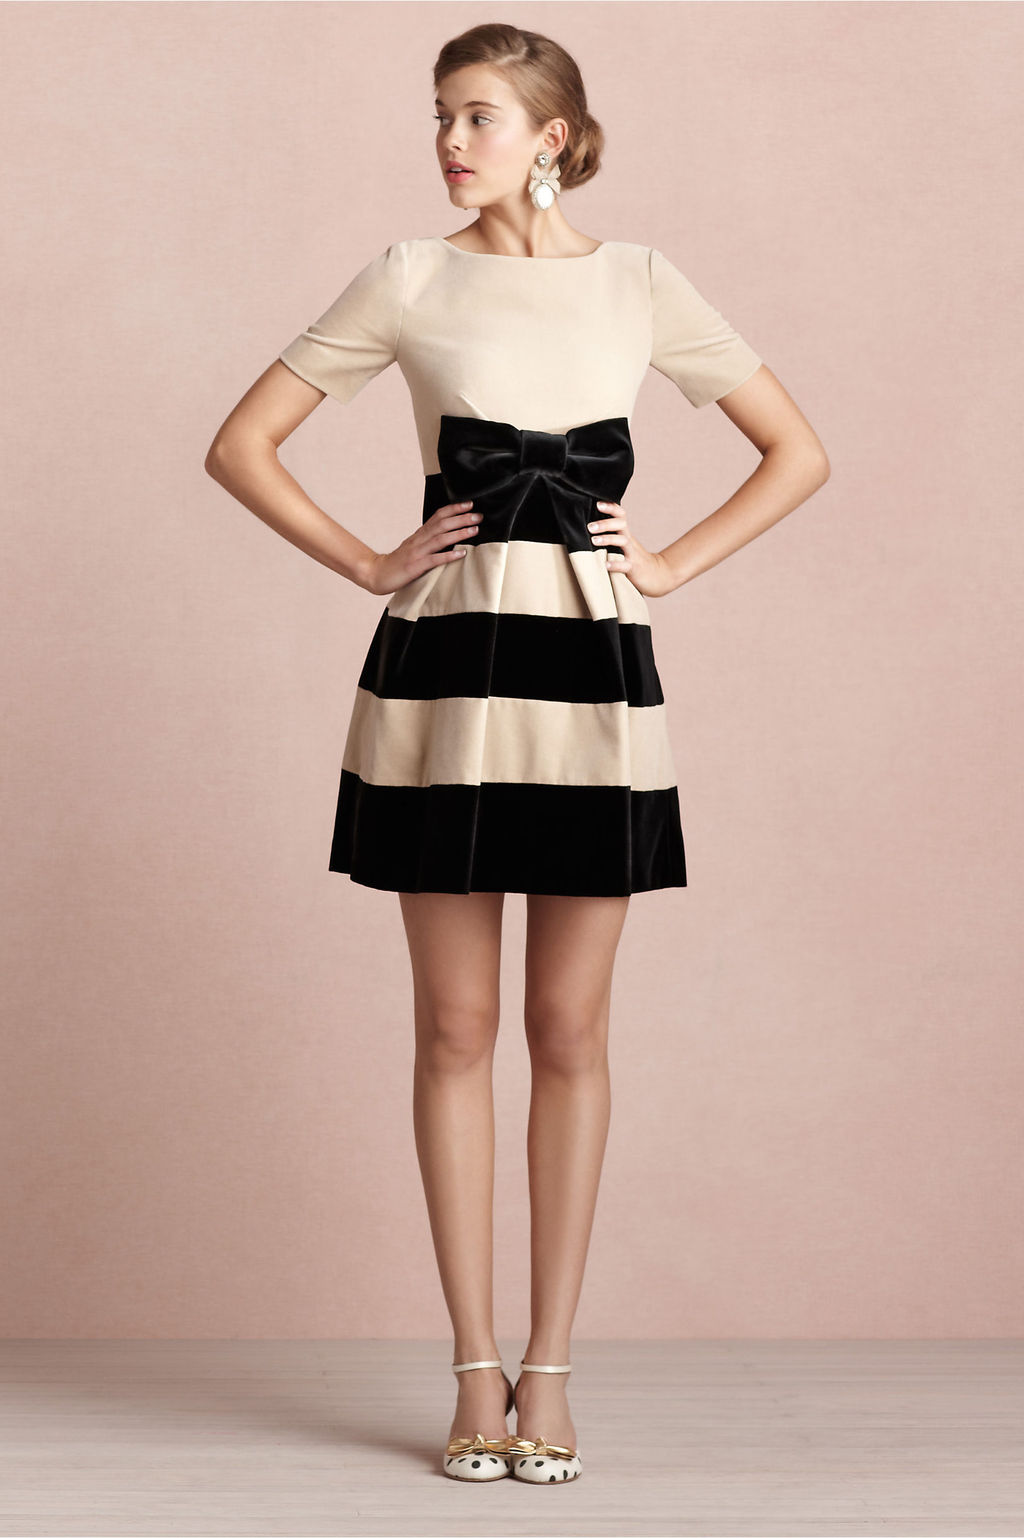 Covetable-bridesmaid-dresses-from-bhldn-2013-bridal-party-style-black-cream.full